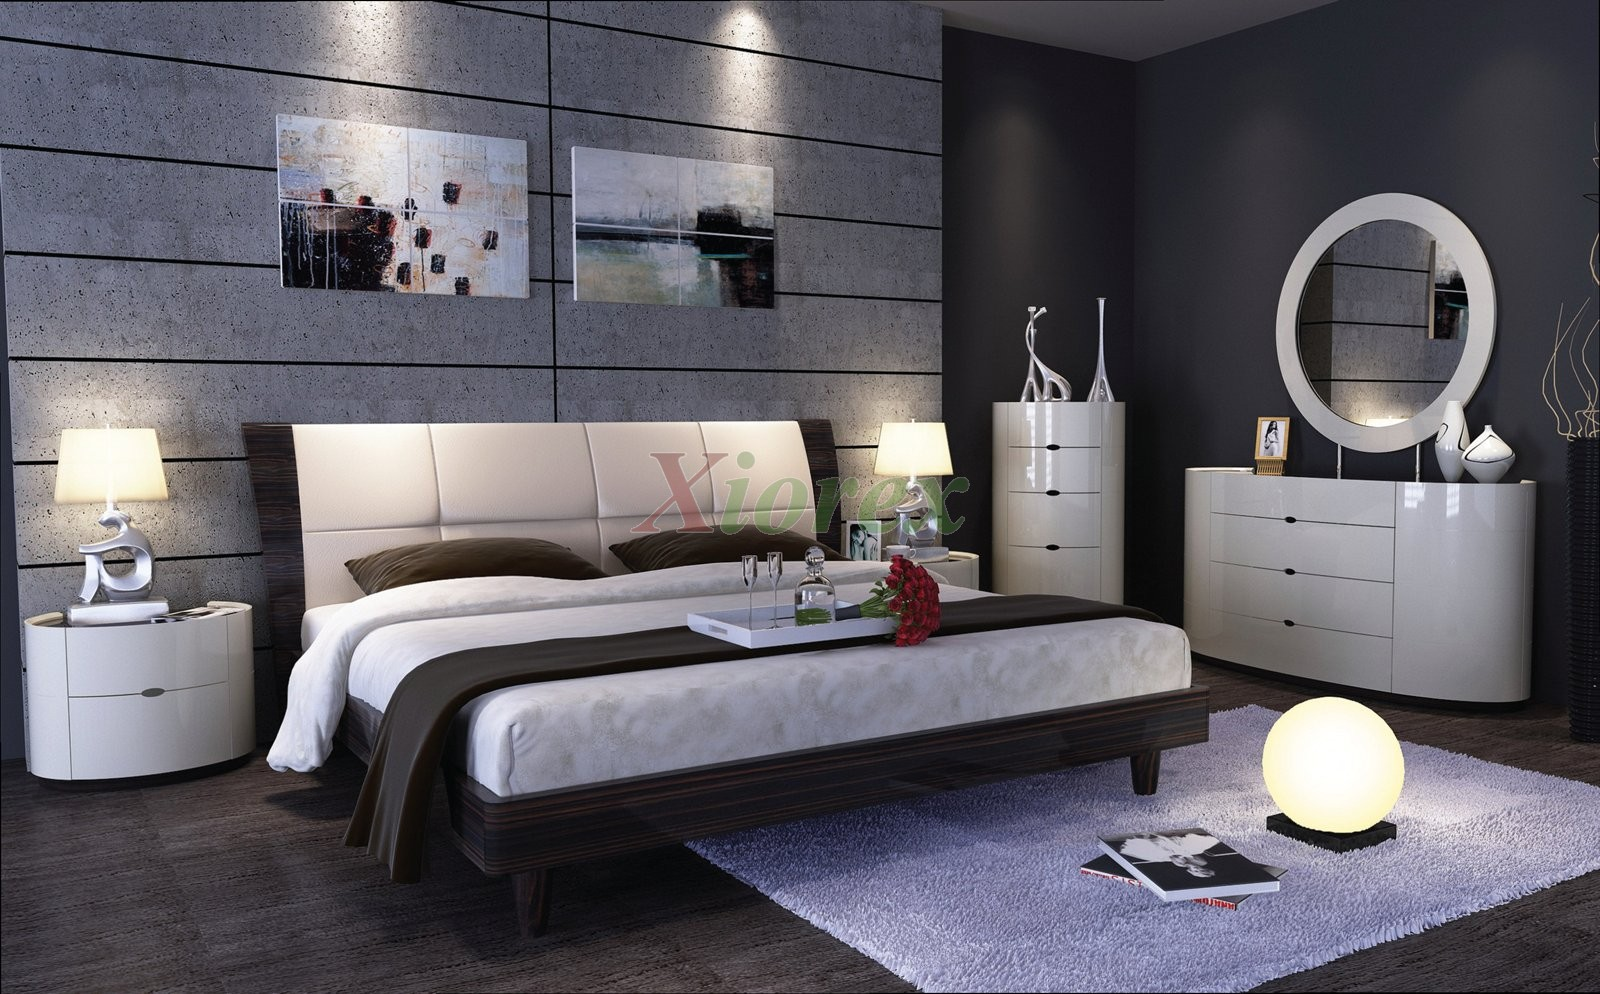 Hydra modern bed sets toronto ottawa calgary vancouver bc - Contemporary king bedroom furniture ...